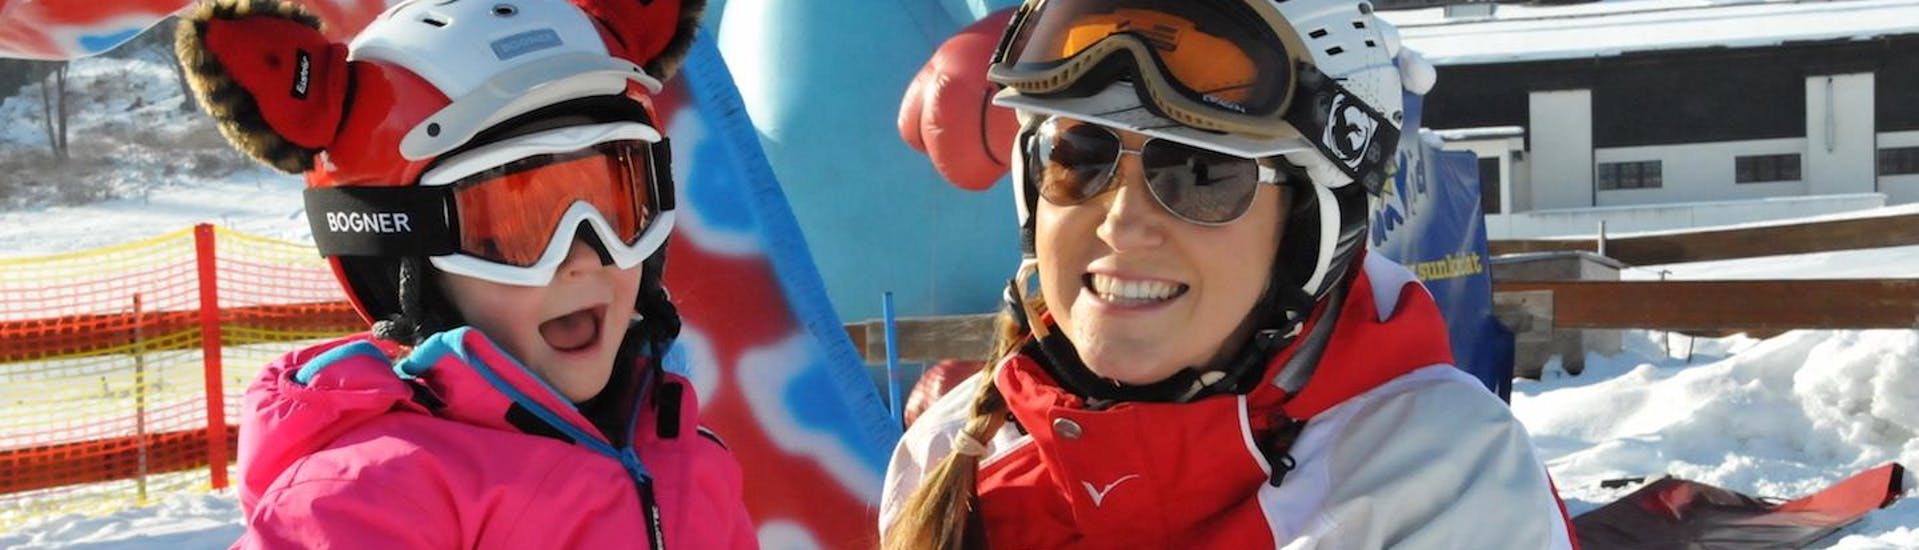 Kids Ski Lessons (4-12 y.) for Beginners with Snowsports Company Zell am See - Hero image